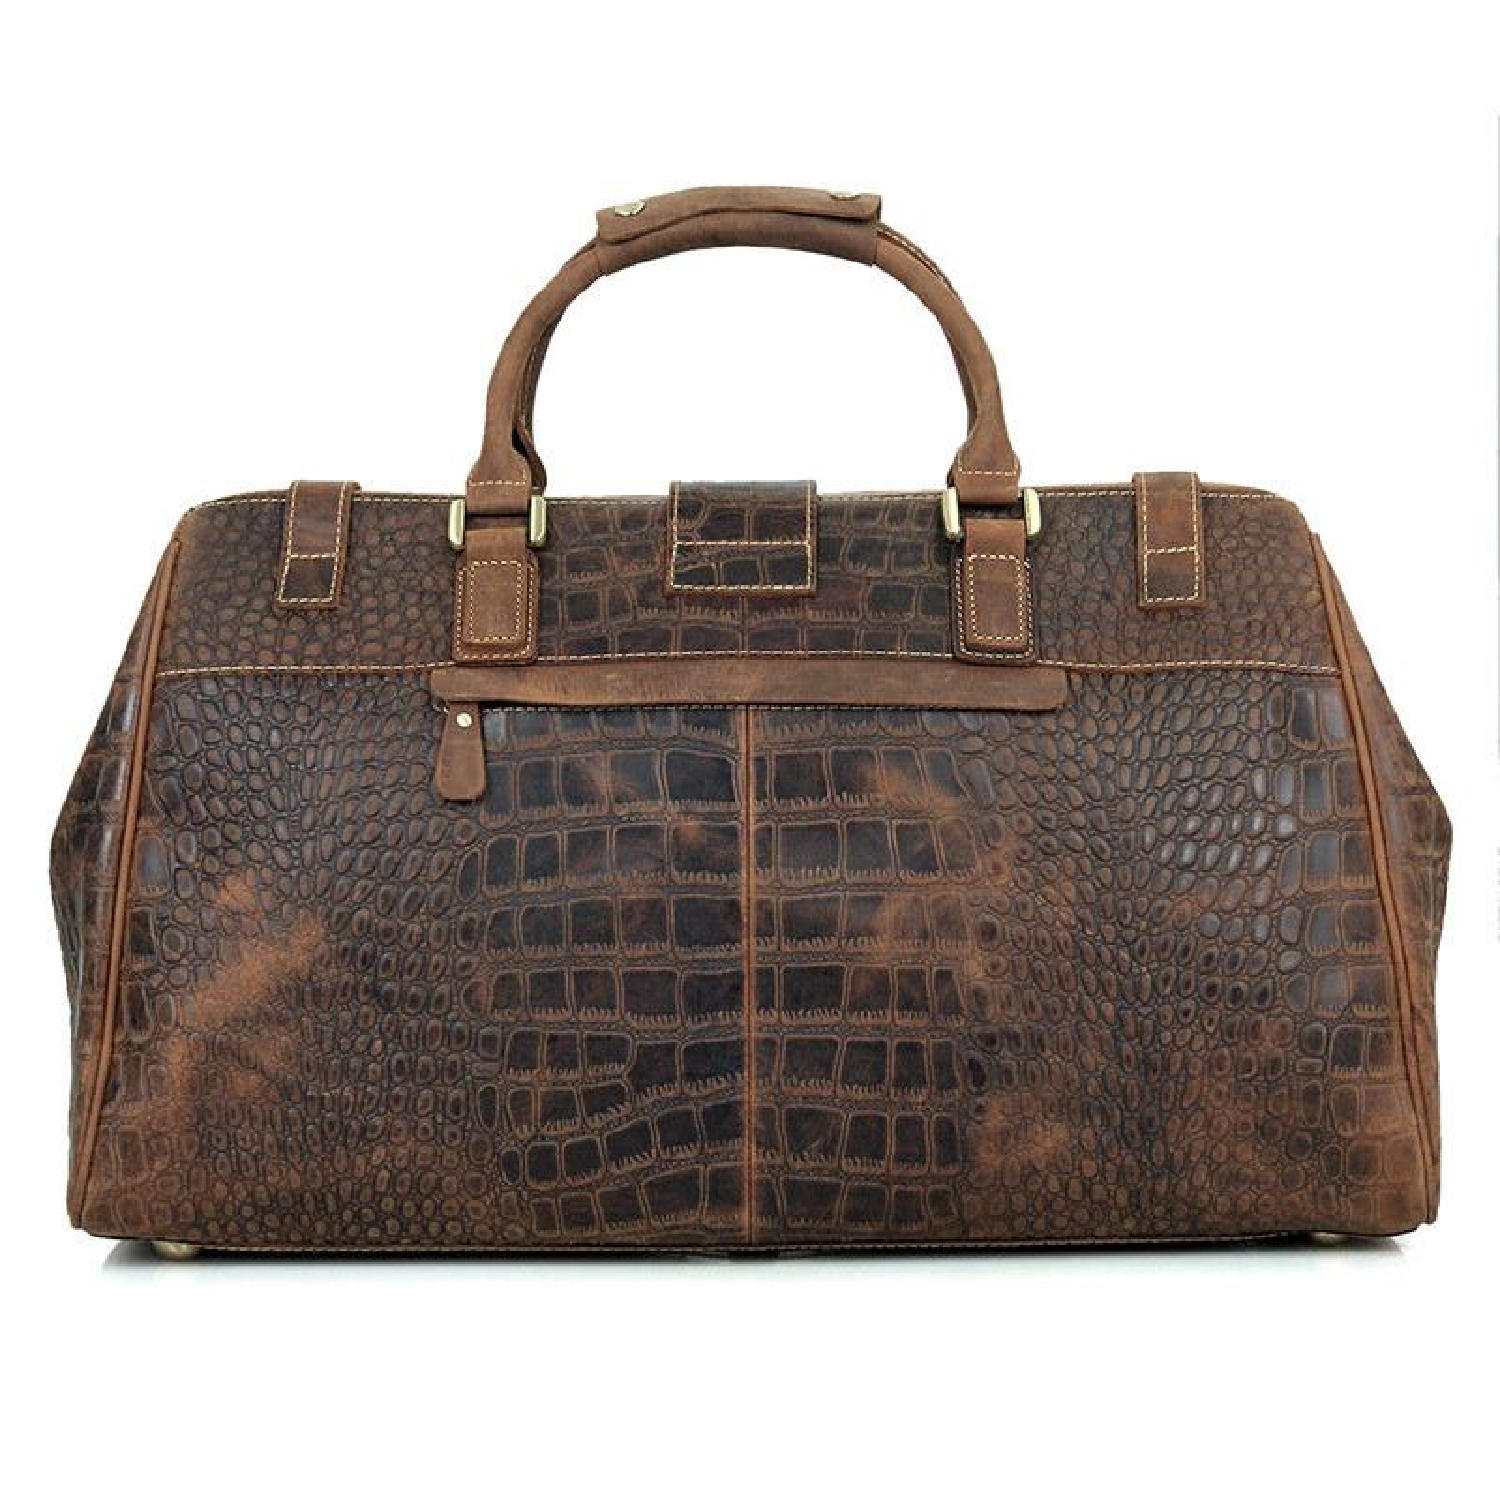 89cbb1abf276 Bag Crocodile Travel Luggage Men Duffle Overnight Duffel Leather Bags High  Quality Pattern Women Hand Weekender Gym Sports Coach Bags